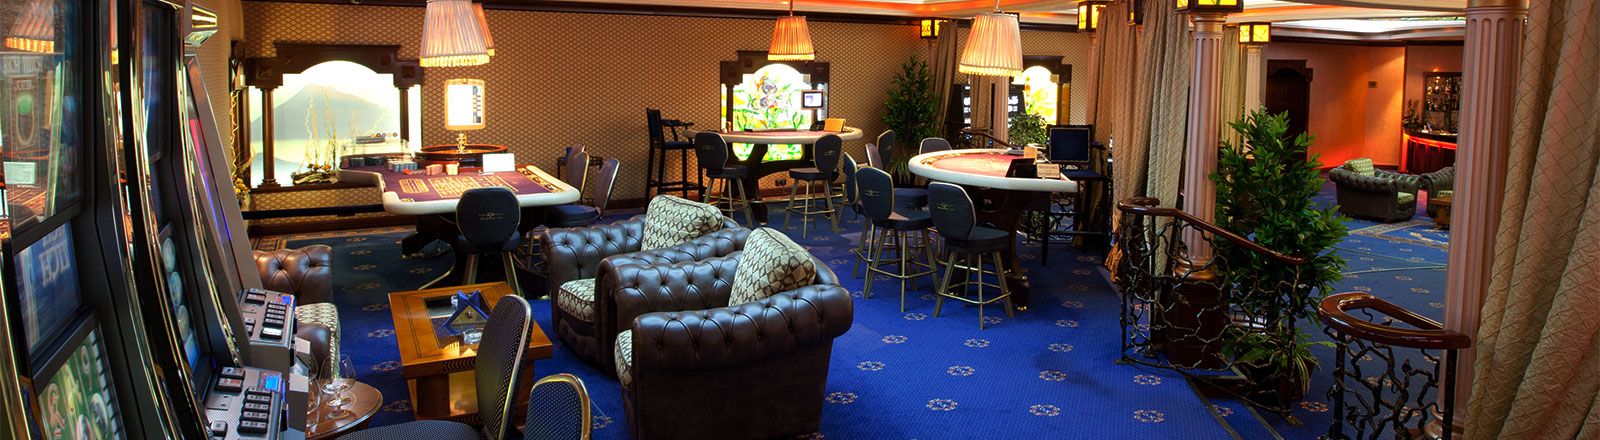 how to play casino slots to win